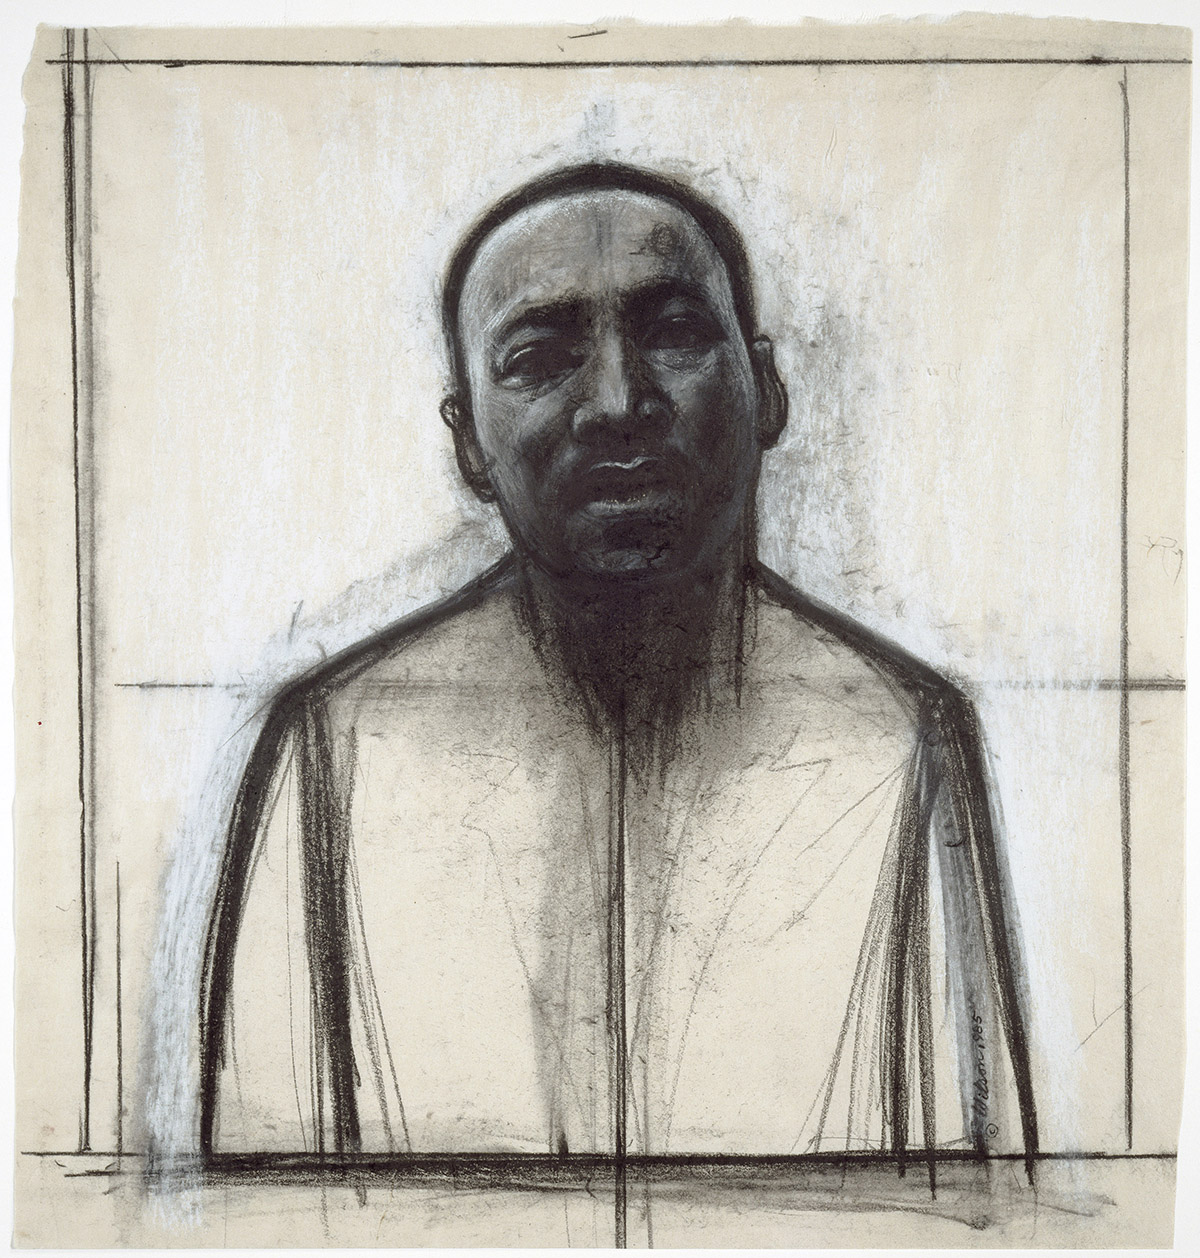 Dr. Martin Luther King, Jr. Drawing by John Wilson